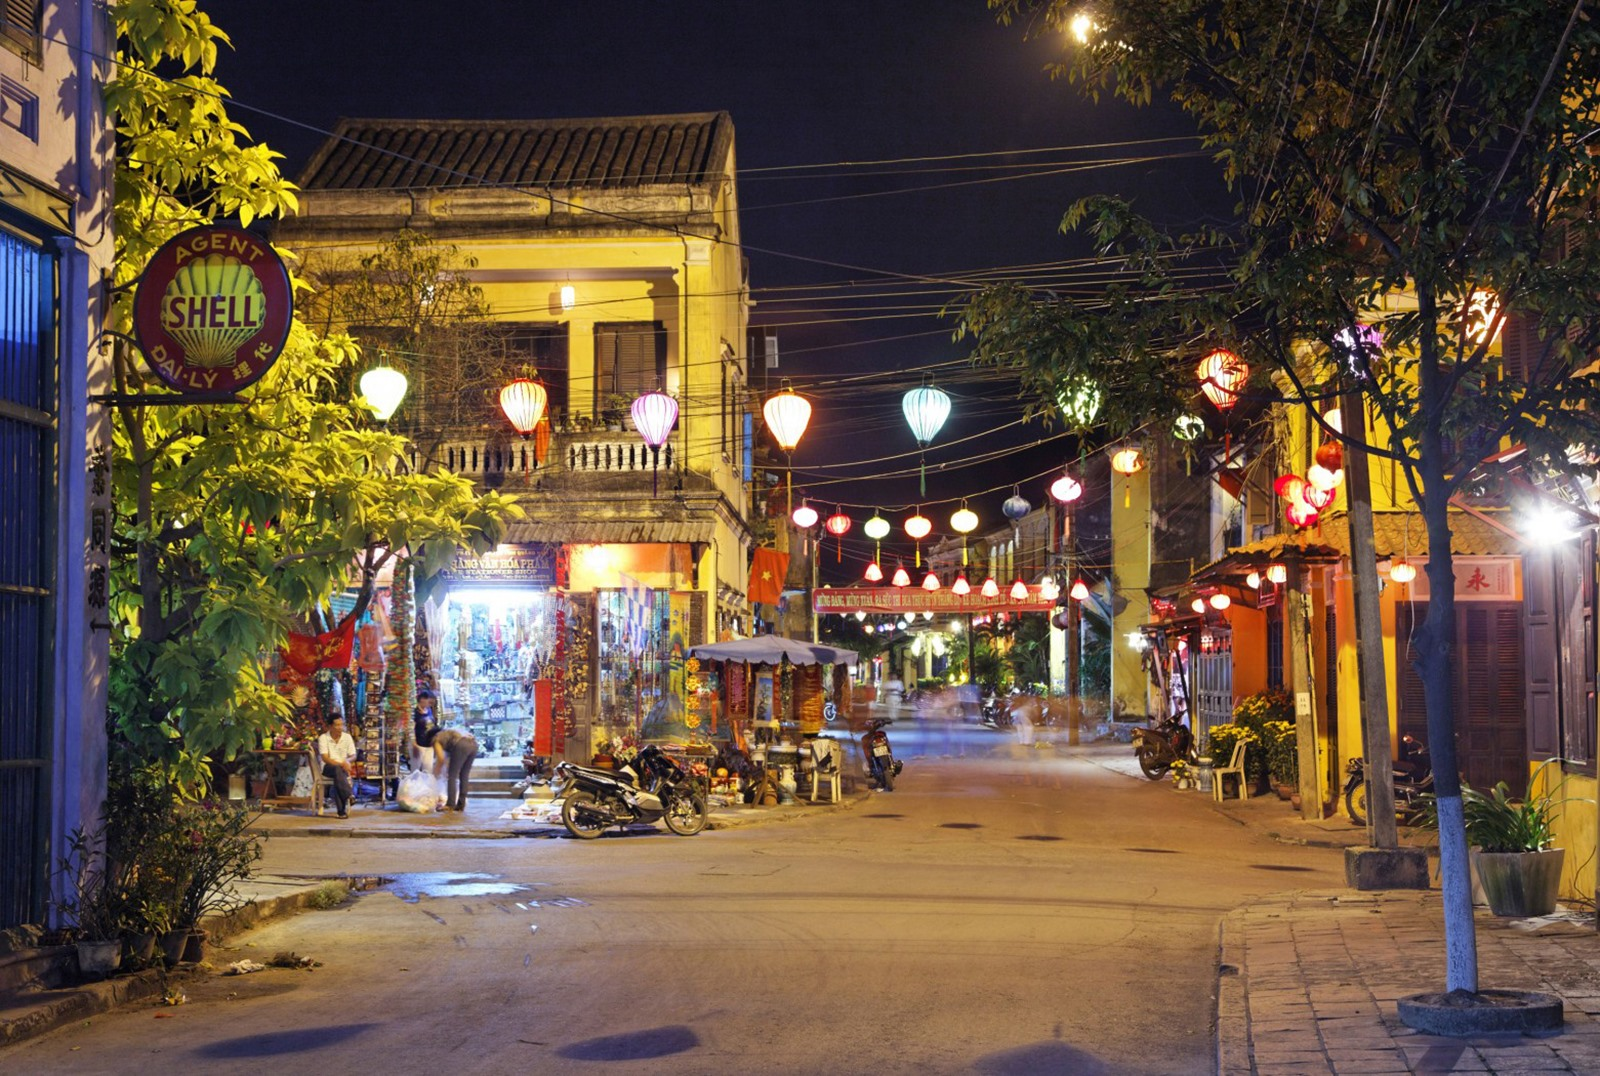 Hoi An is known as an ancient town of South Central coastal province Quang Nam. More and more visitors come to Hoi An to contemplate the charming beauty of anicent houses, temples and pagodas, and bridges. In the evening, coloured lanterns make the city sparkling, romantic and more attractive.